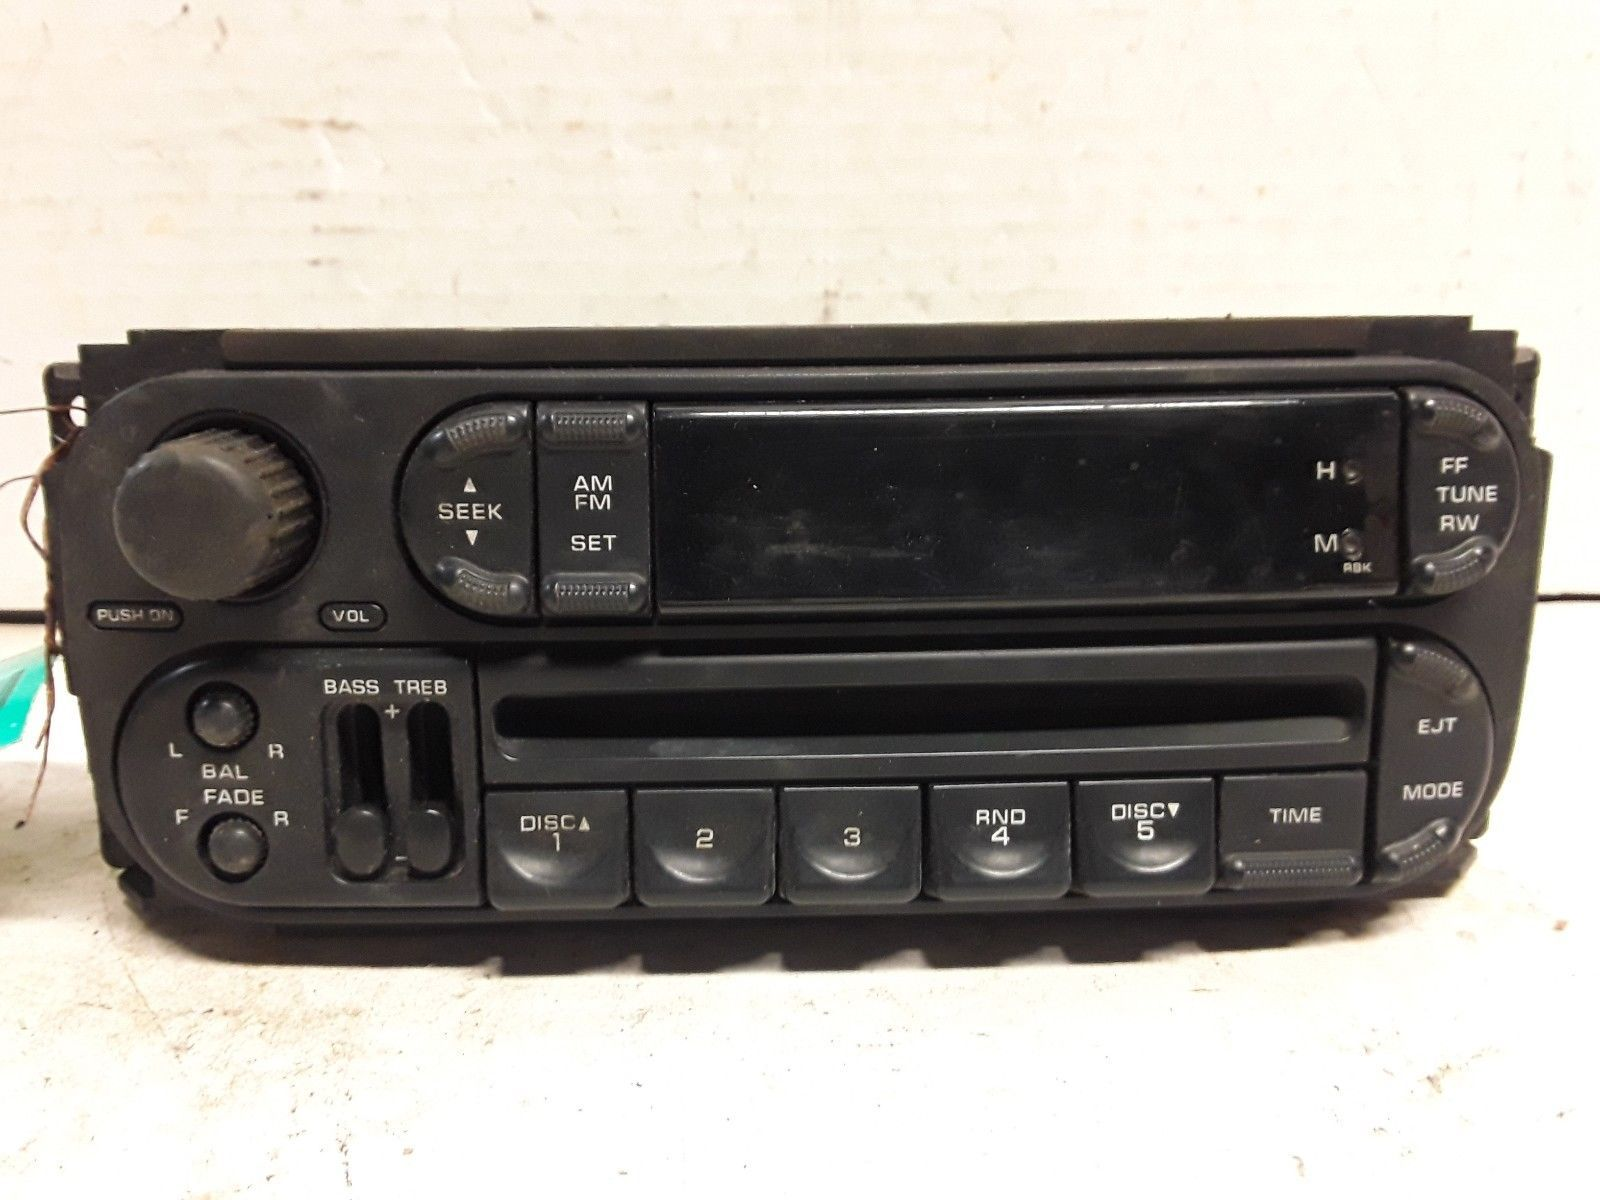 02 03 04 05 06 Dodge Chrysler Jeep AM FM CD radio receiver OEM P56038589AN